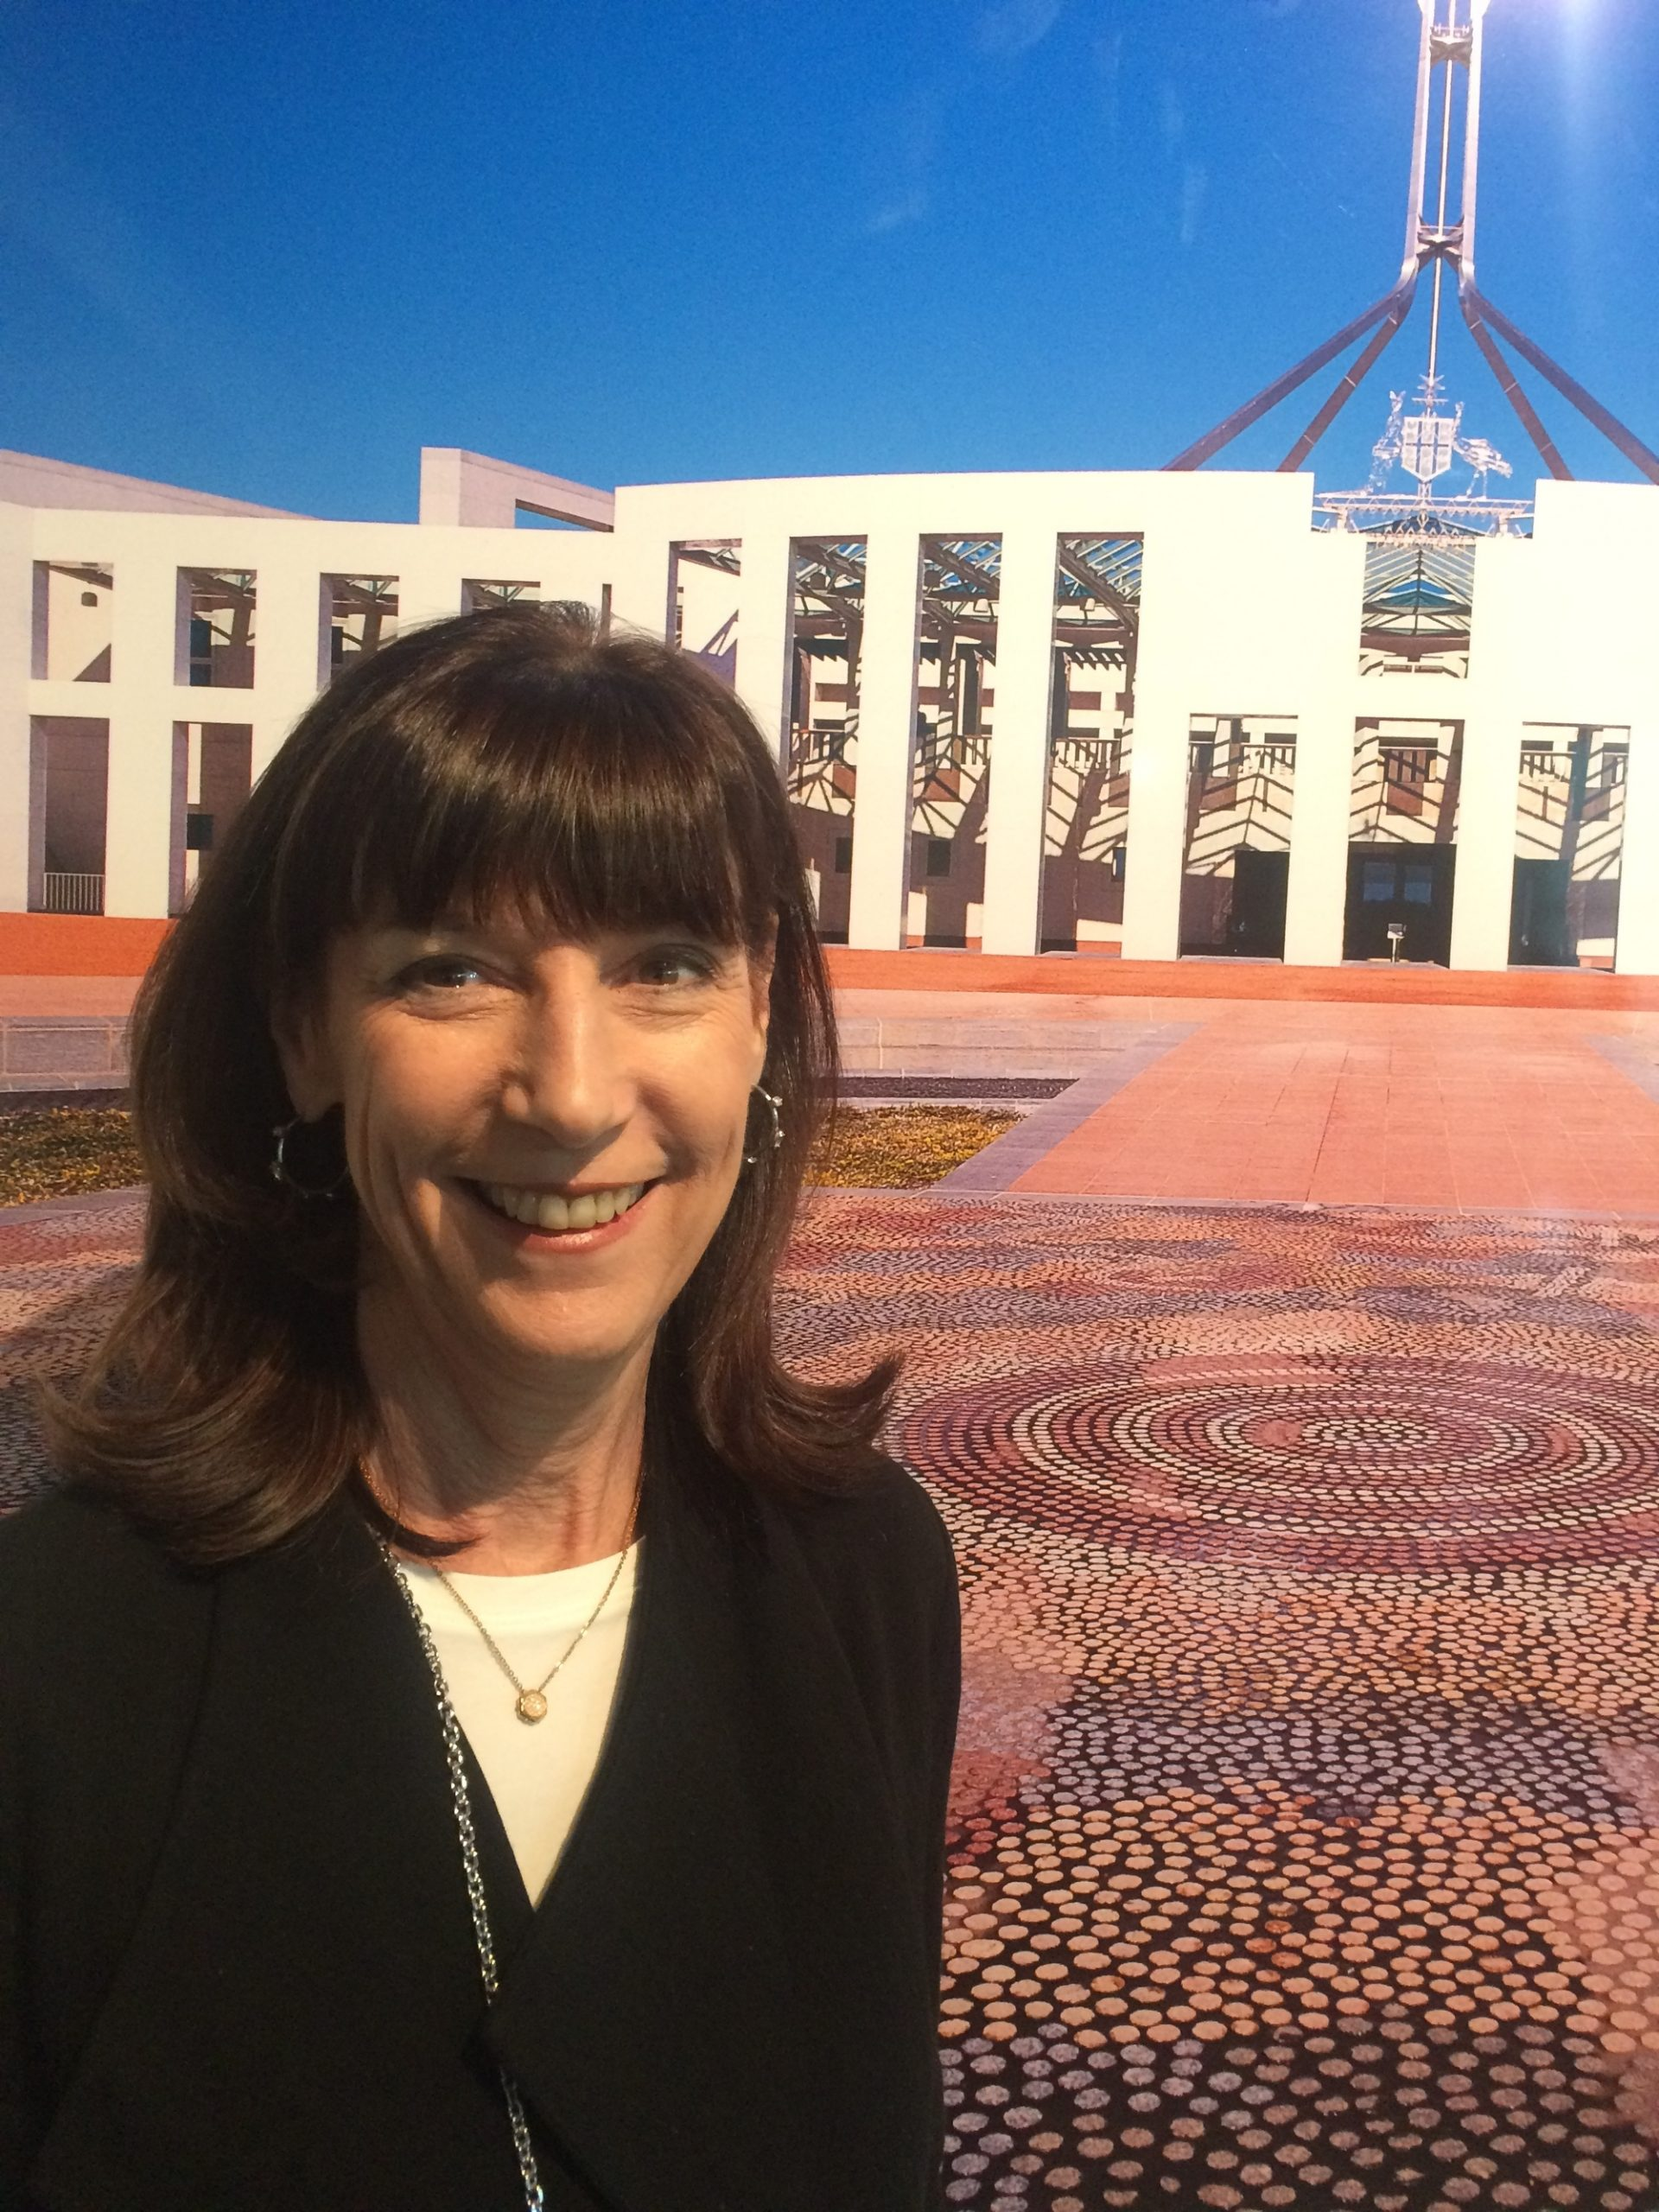 karenne, on forecourt mosiac, with parliament house in background